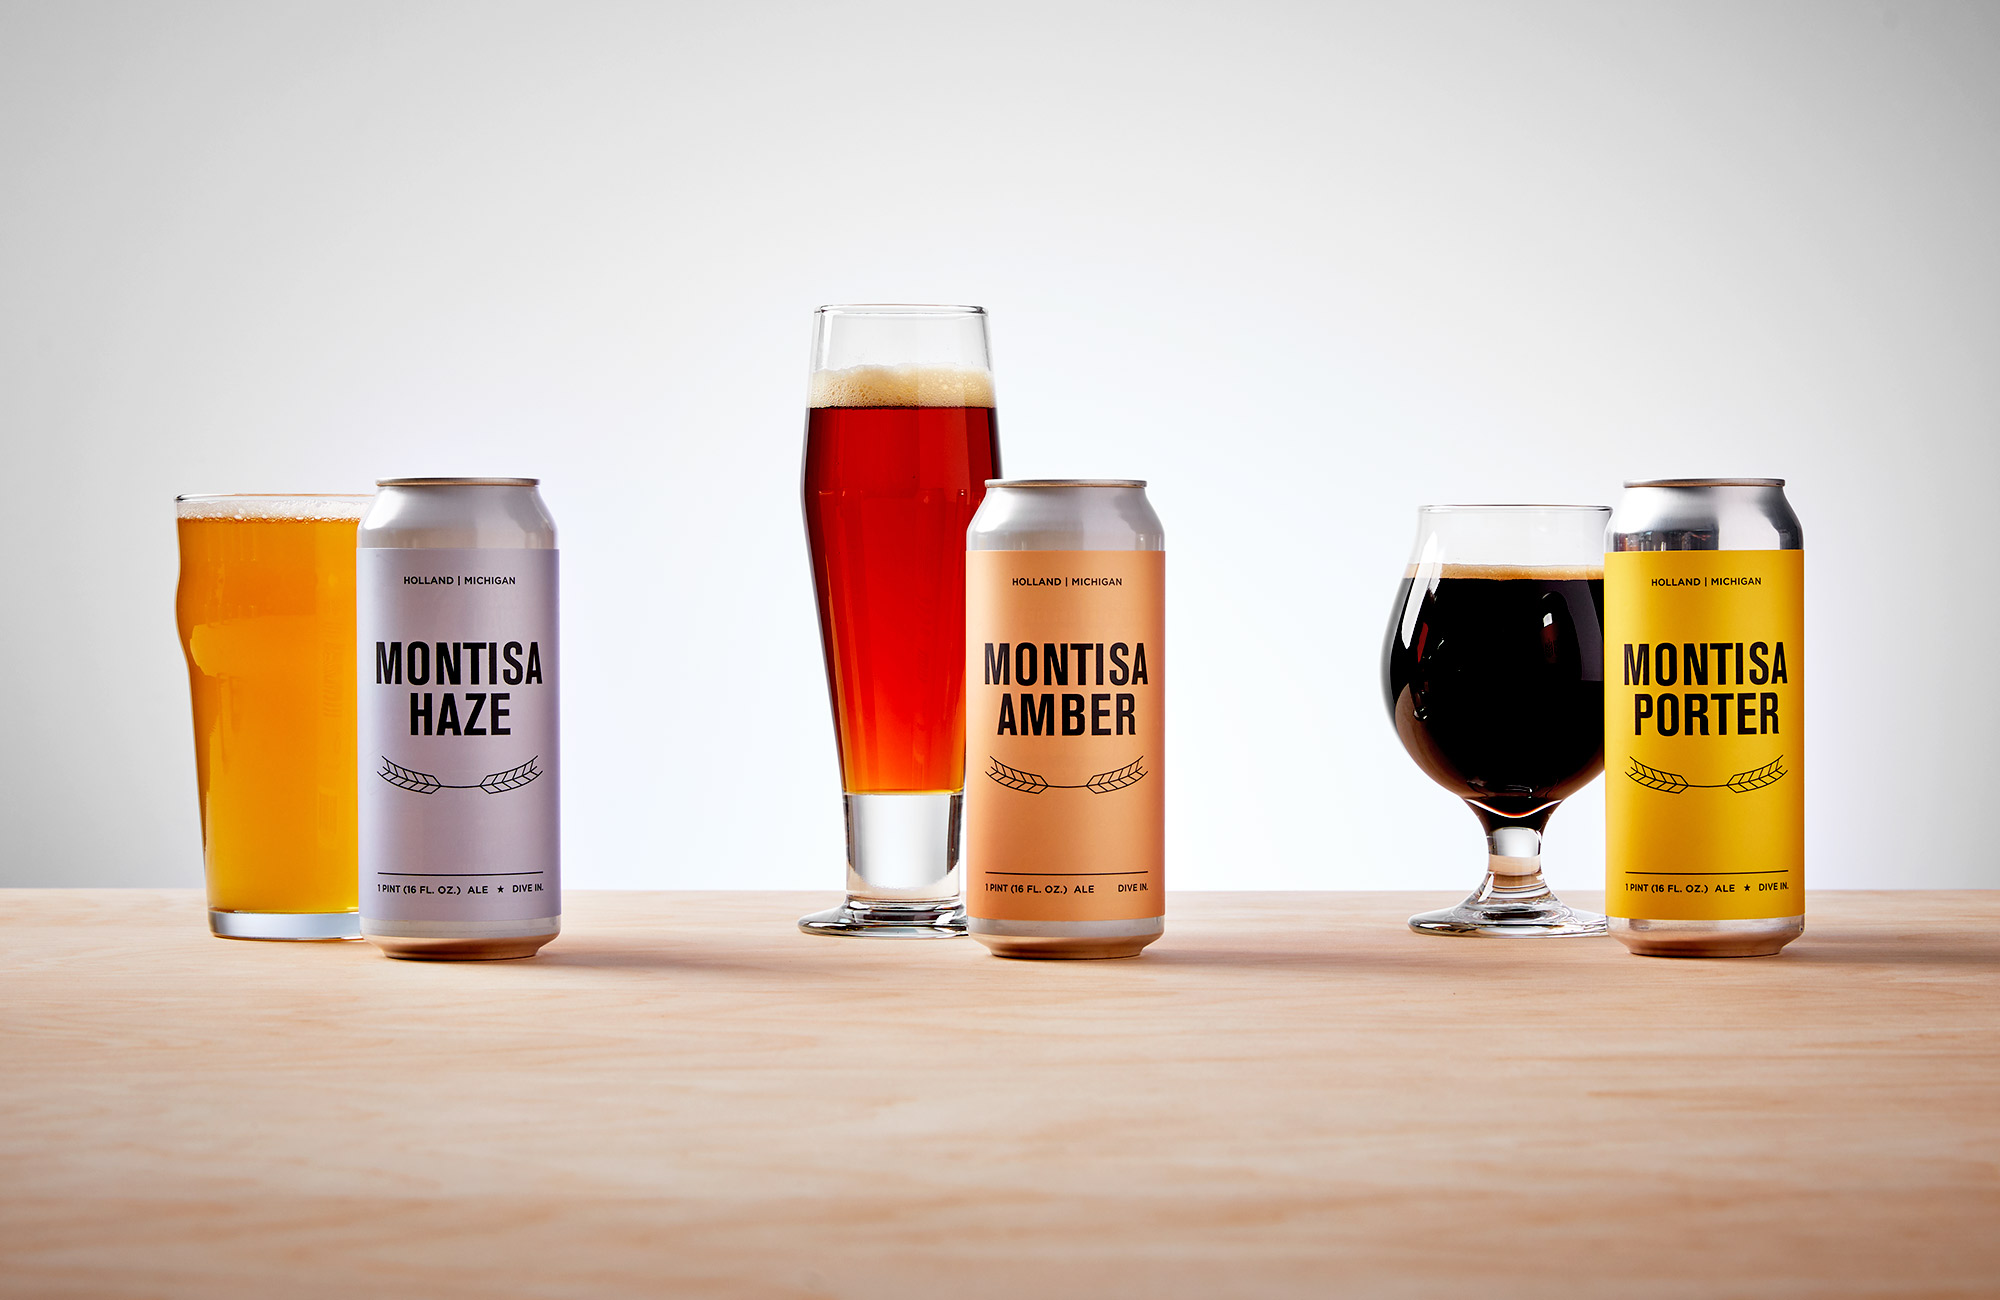 Montisa beer cans.